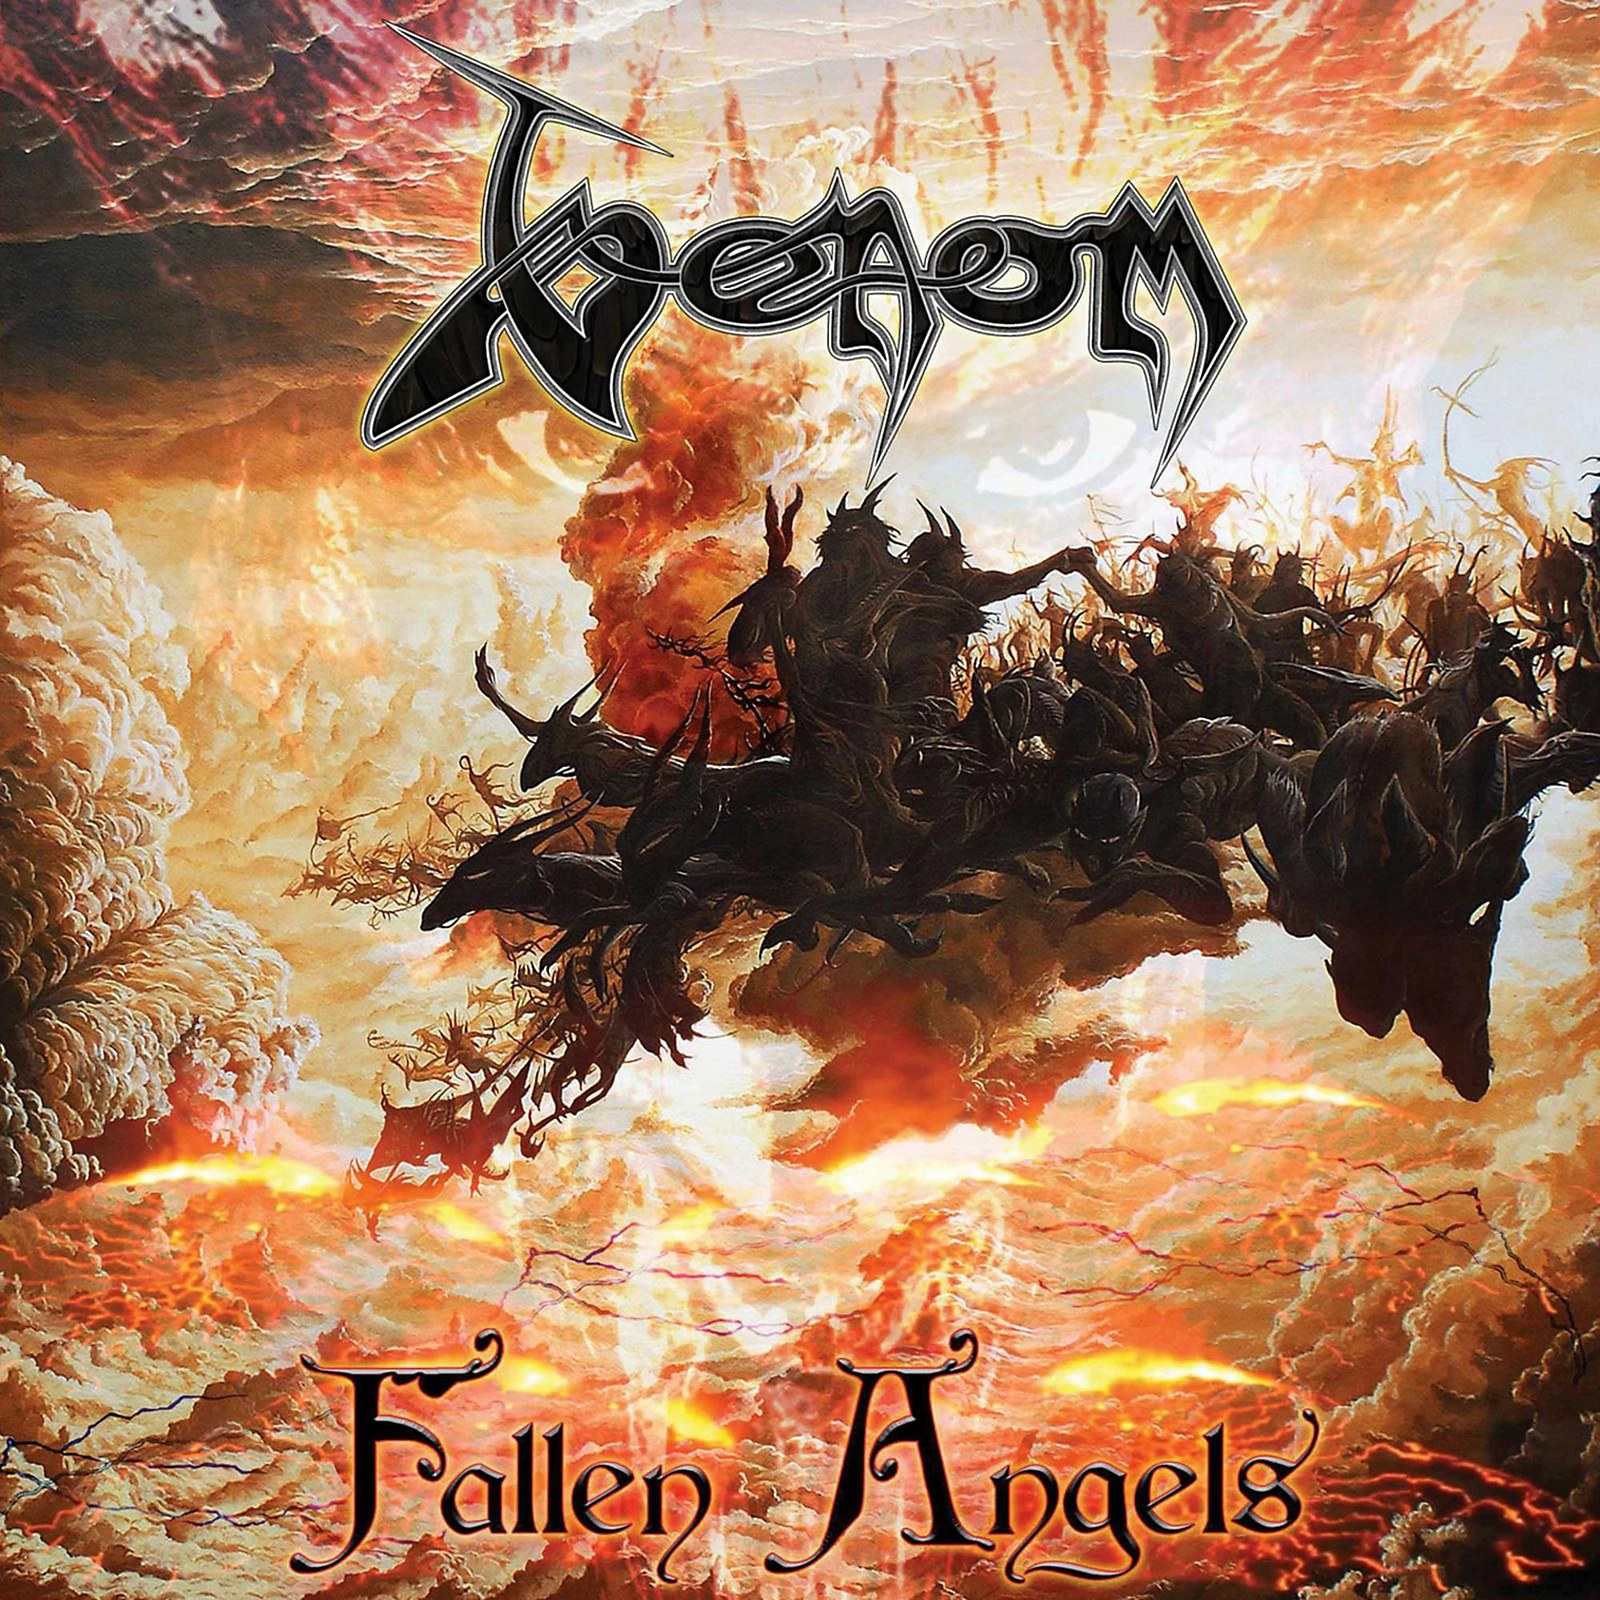 Review for Venom - Fallen Angels